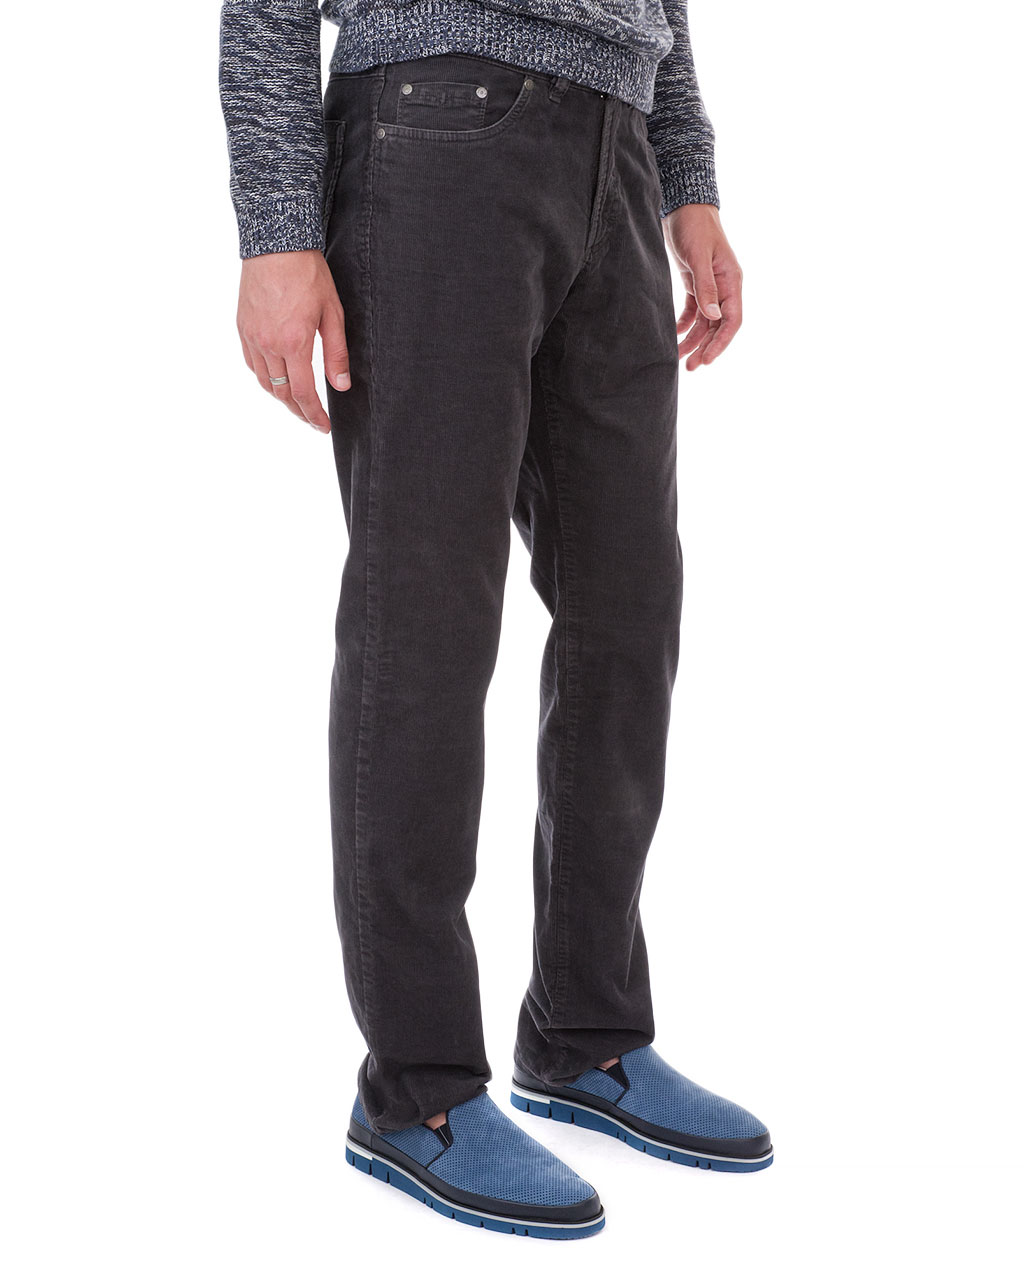 Men's trousers NEVIO-8 43124-98/19-20 (4)